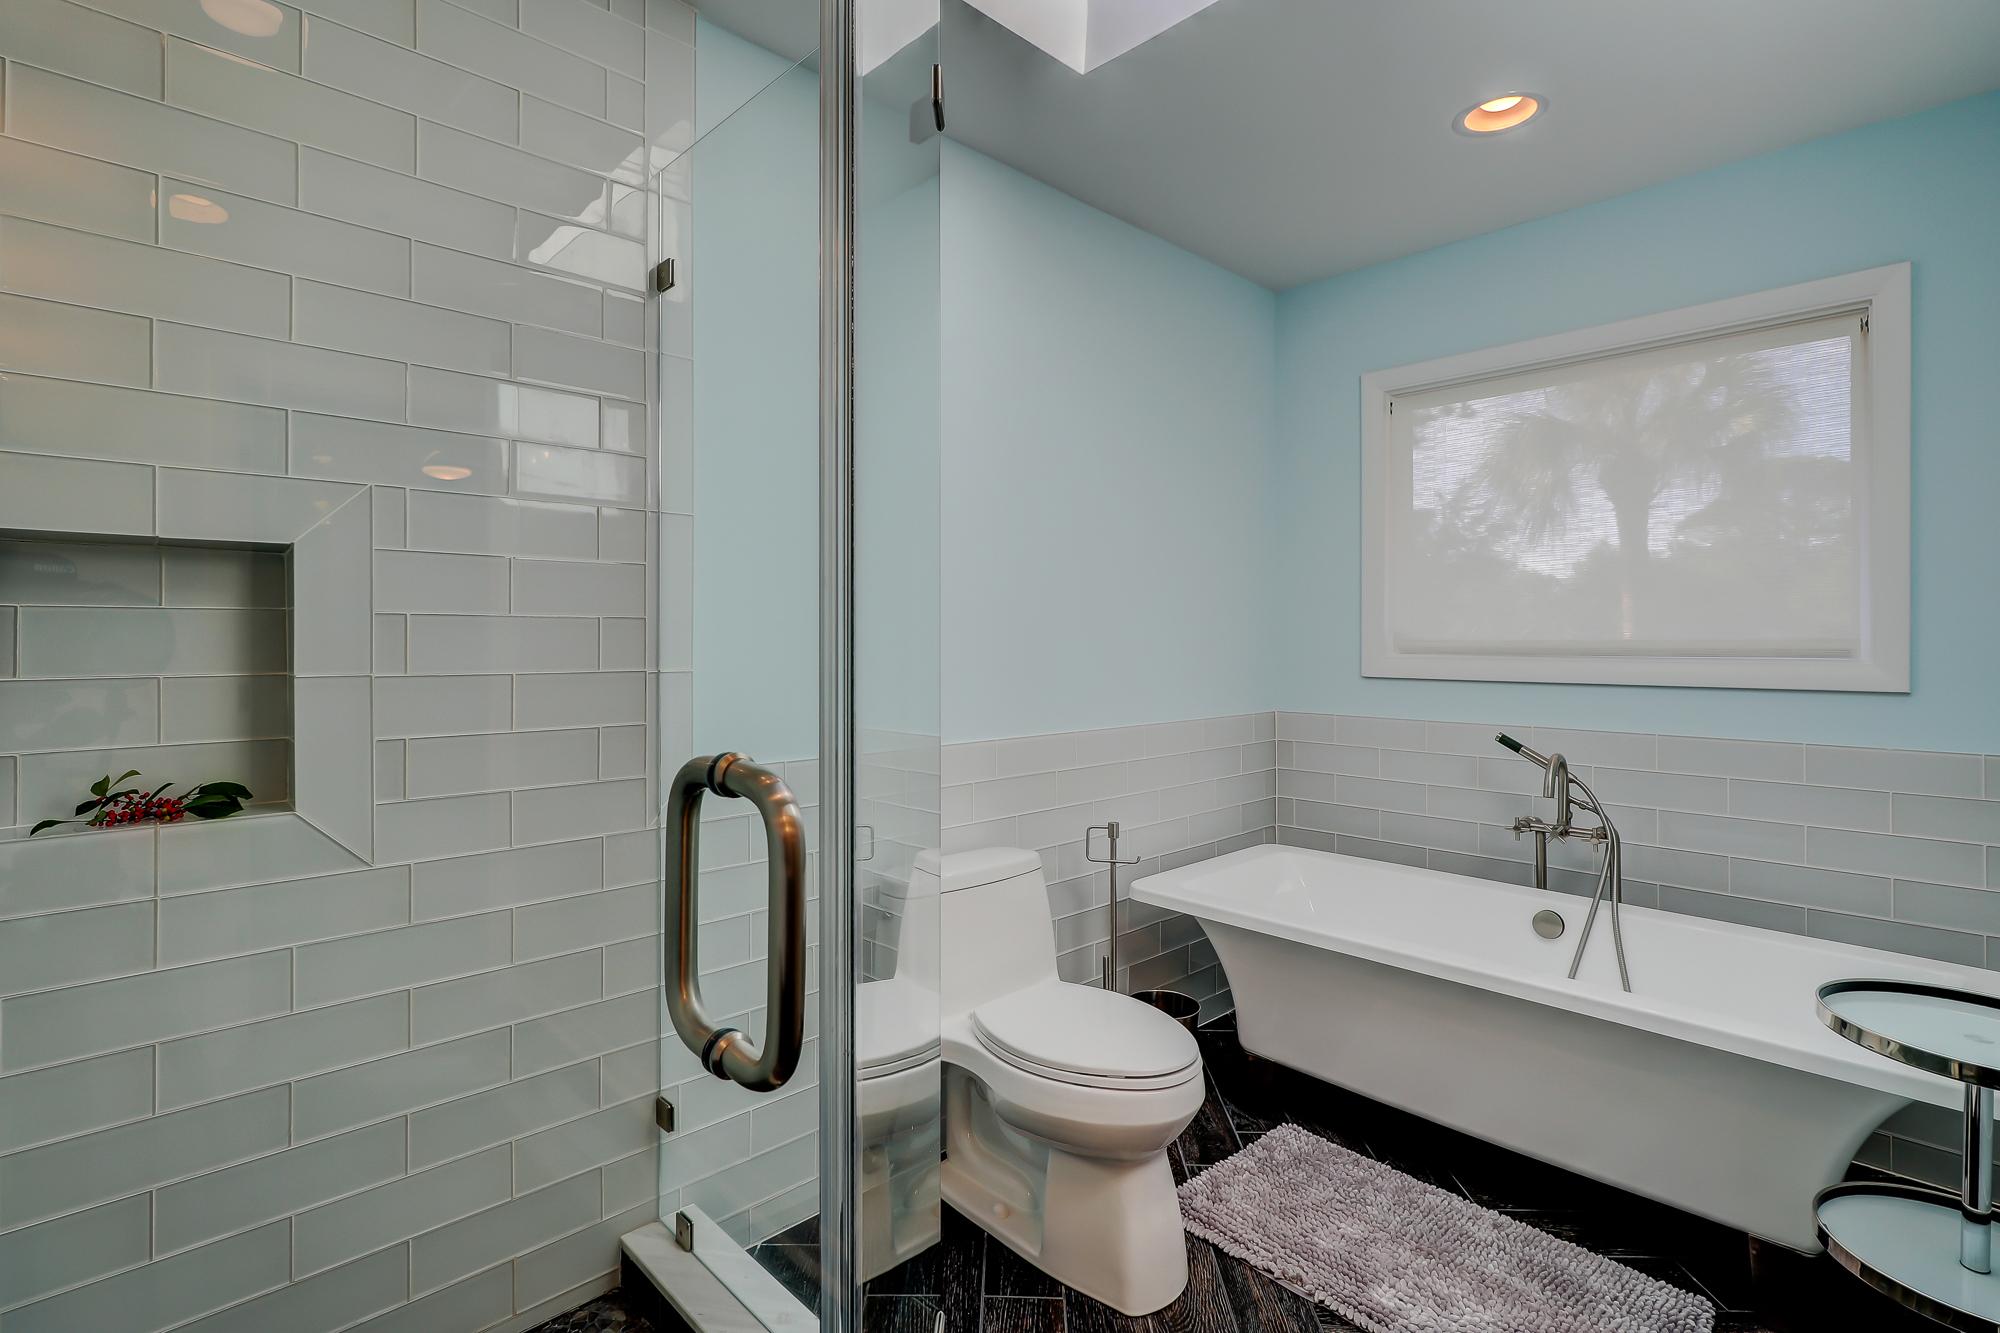 Glass Tile wainscoting, frameless shower enclosure and a soaking tub.